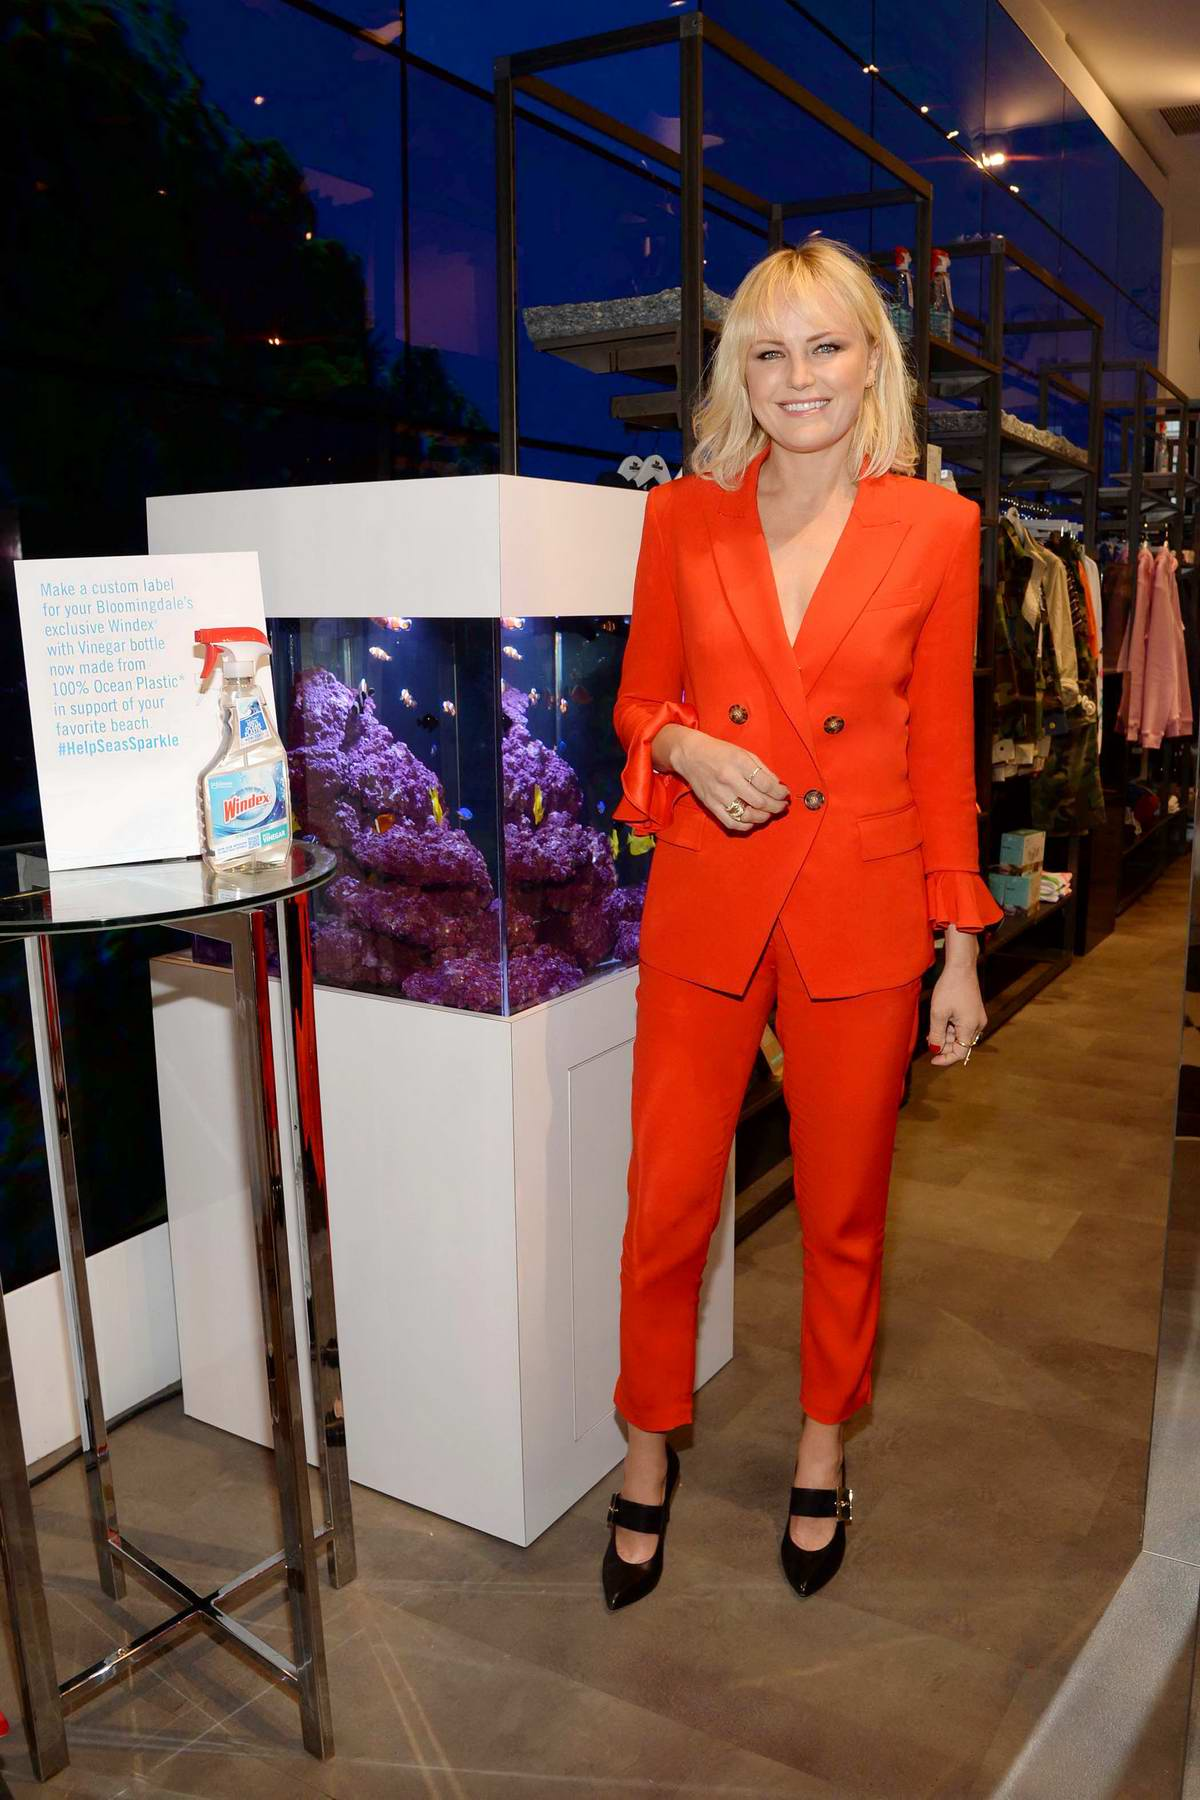 Malin Akerman unveils New Windex at Bloomingdale's in New York City